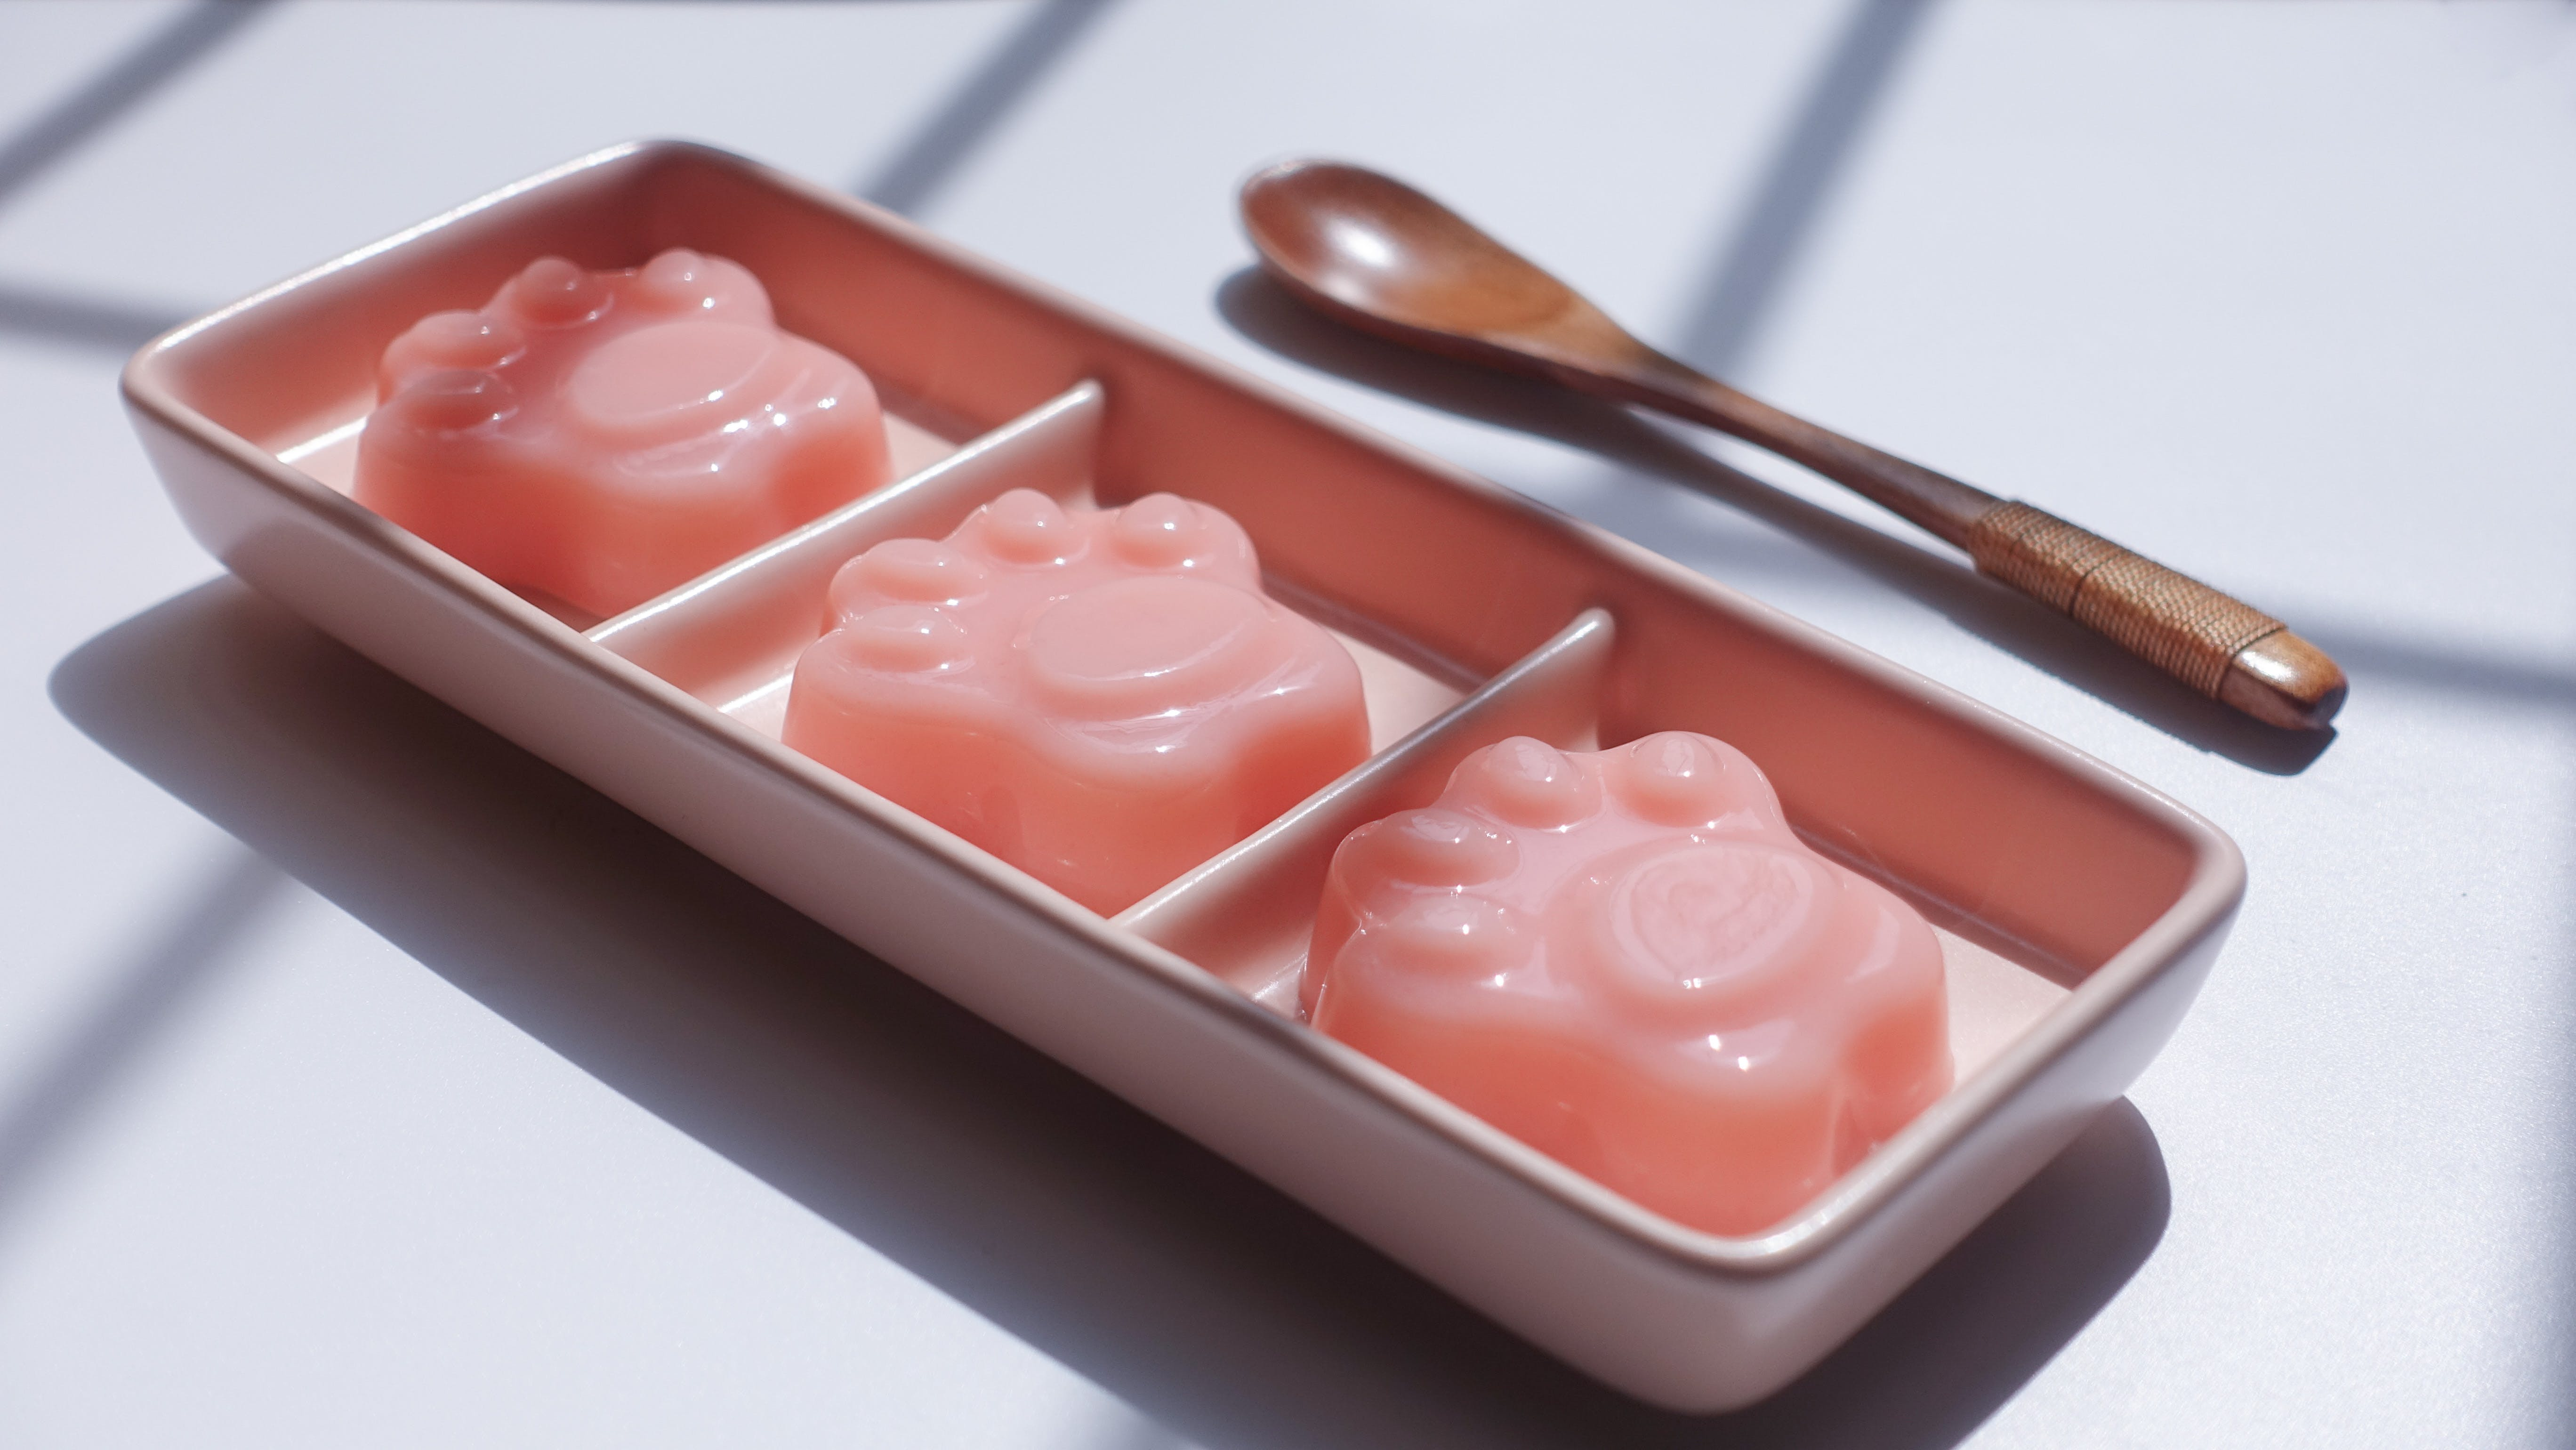 Paw Shape Jell-o on Pink Ceramic Container Near Brown Wooden Tablespoon